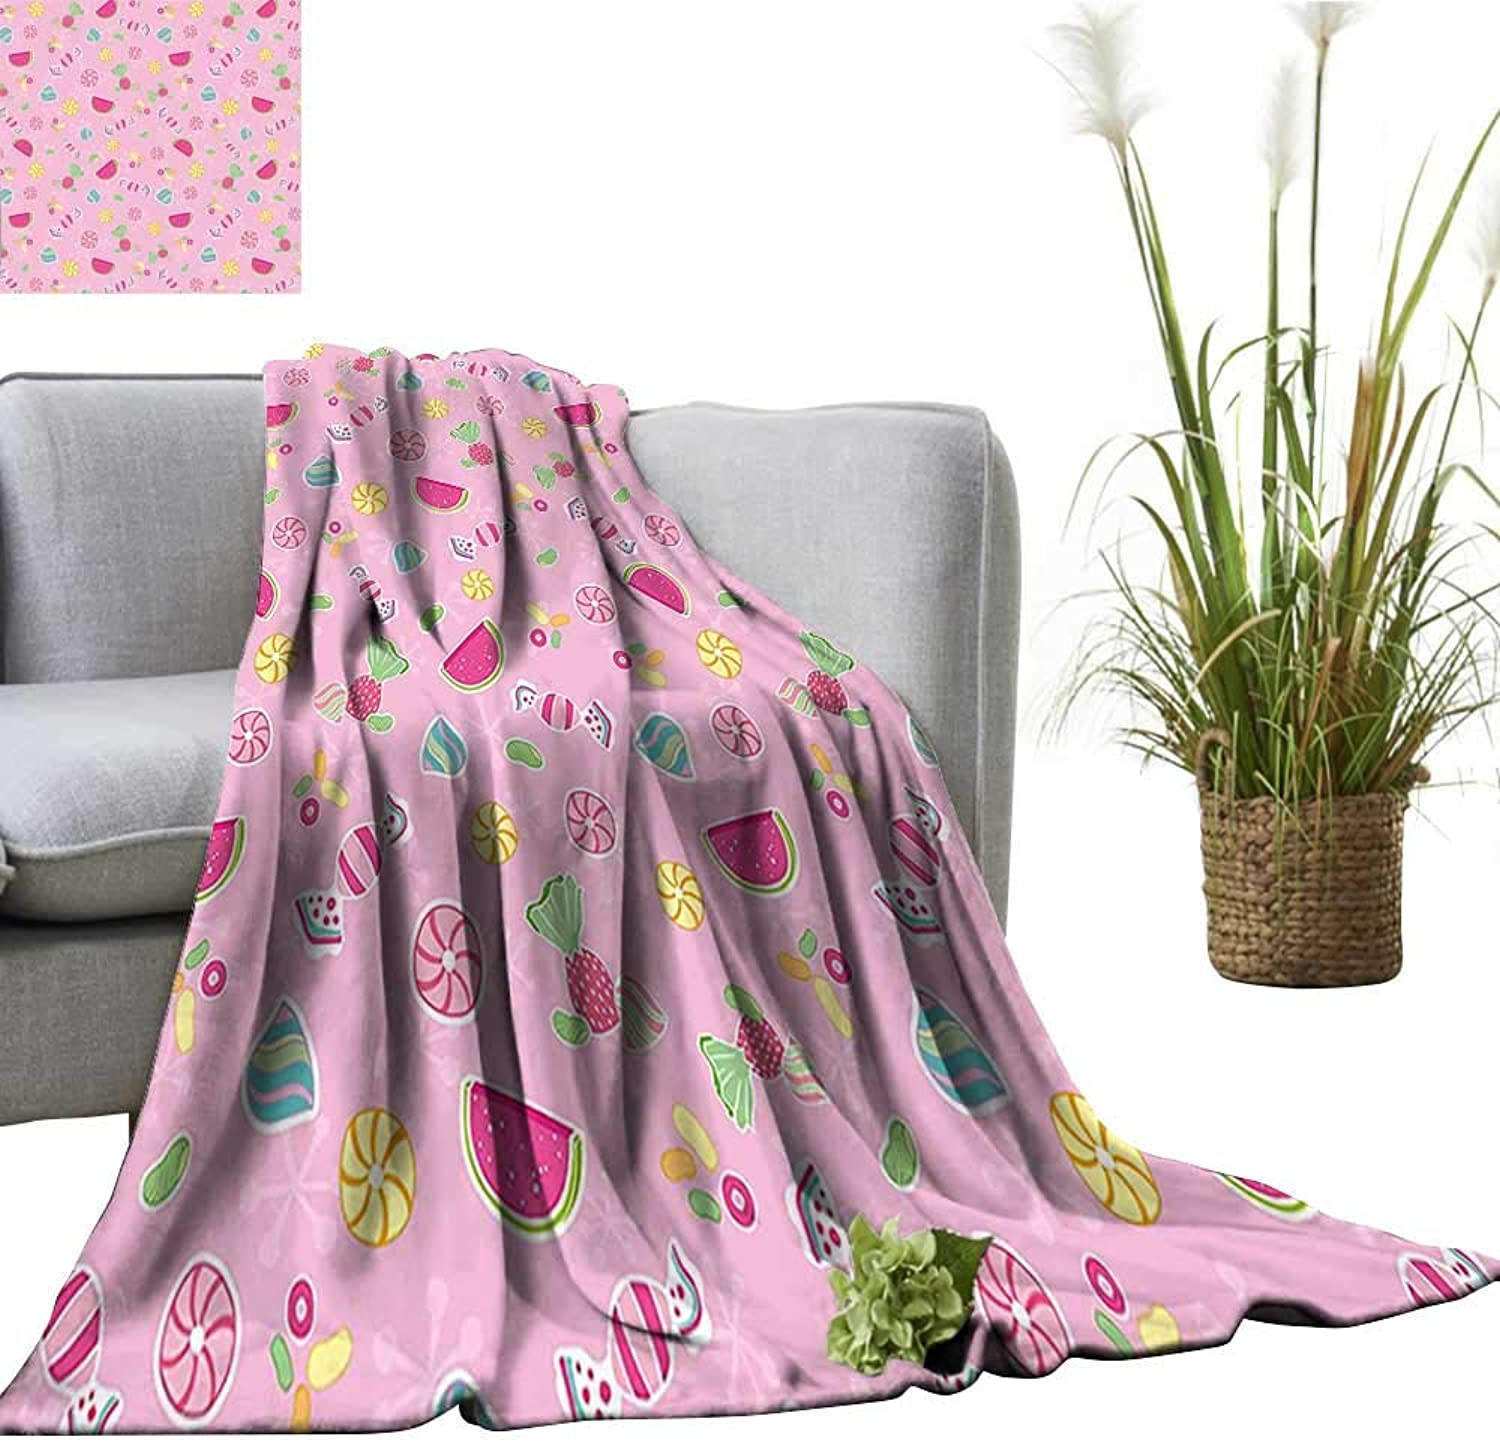 YOYI Comfortable blanketYummy Treats Watermelon Creative Delicious Tastes Kids Design Light Pink Magenta Mint Cozy Hypoallergenic 50 x70